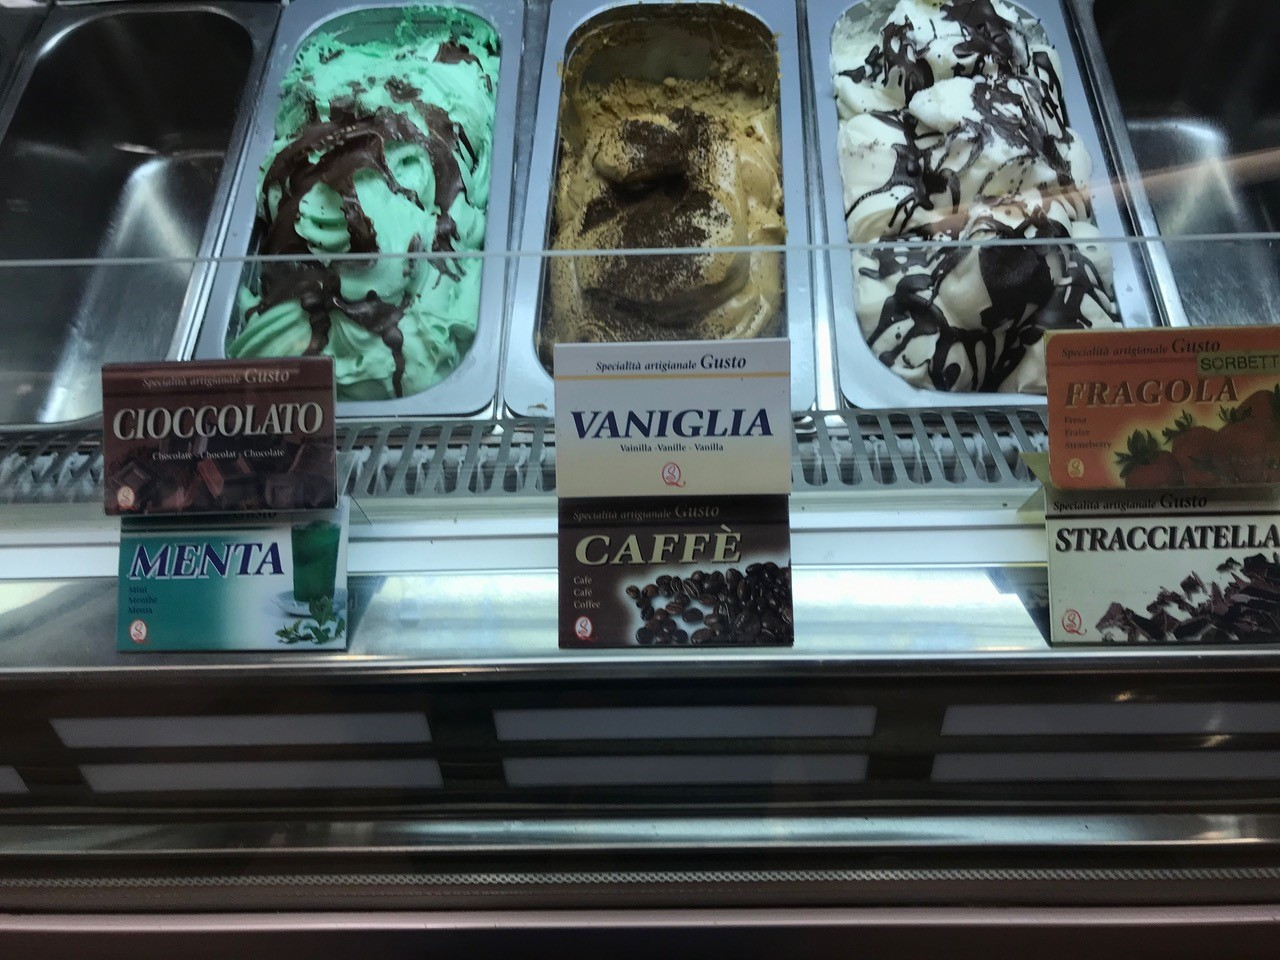 gelato case with various flavors